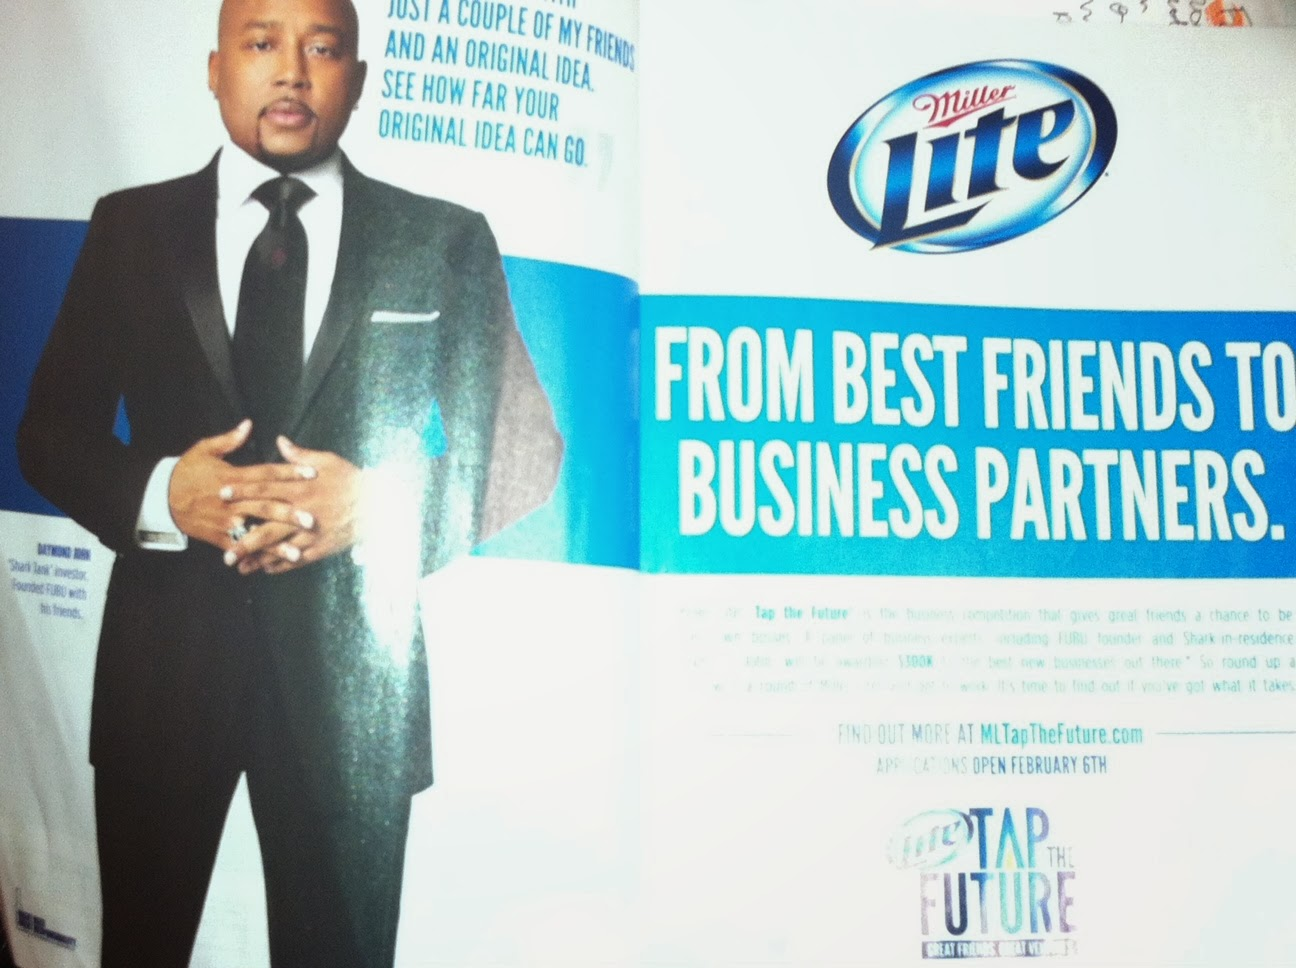 Miller Lite Tap the Future business plan contest